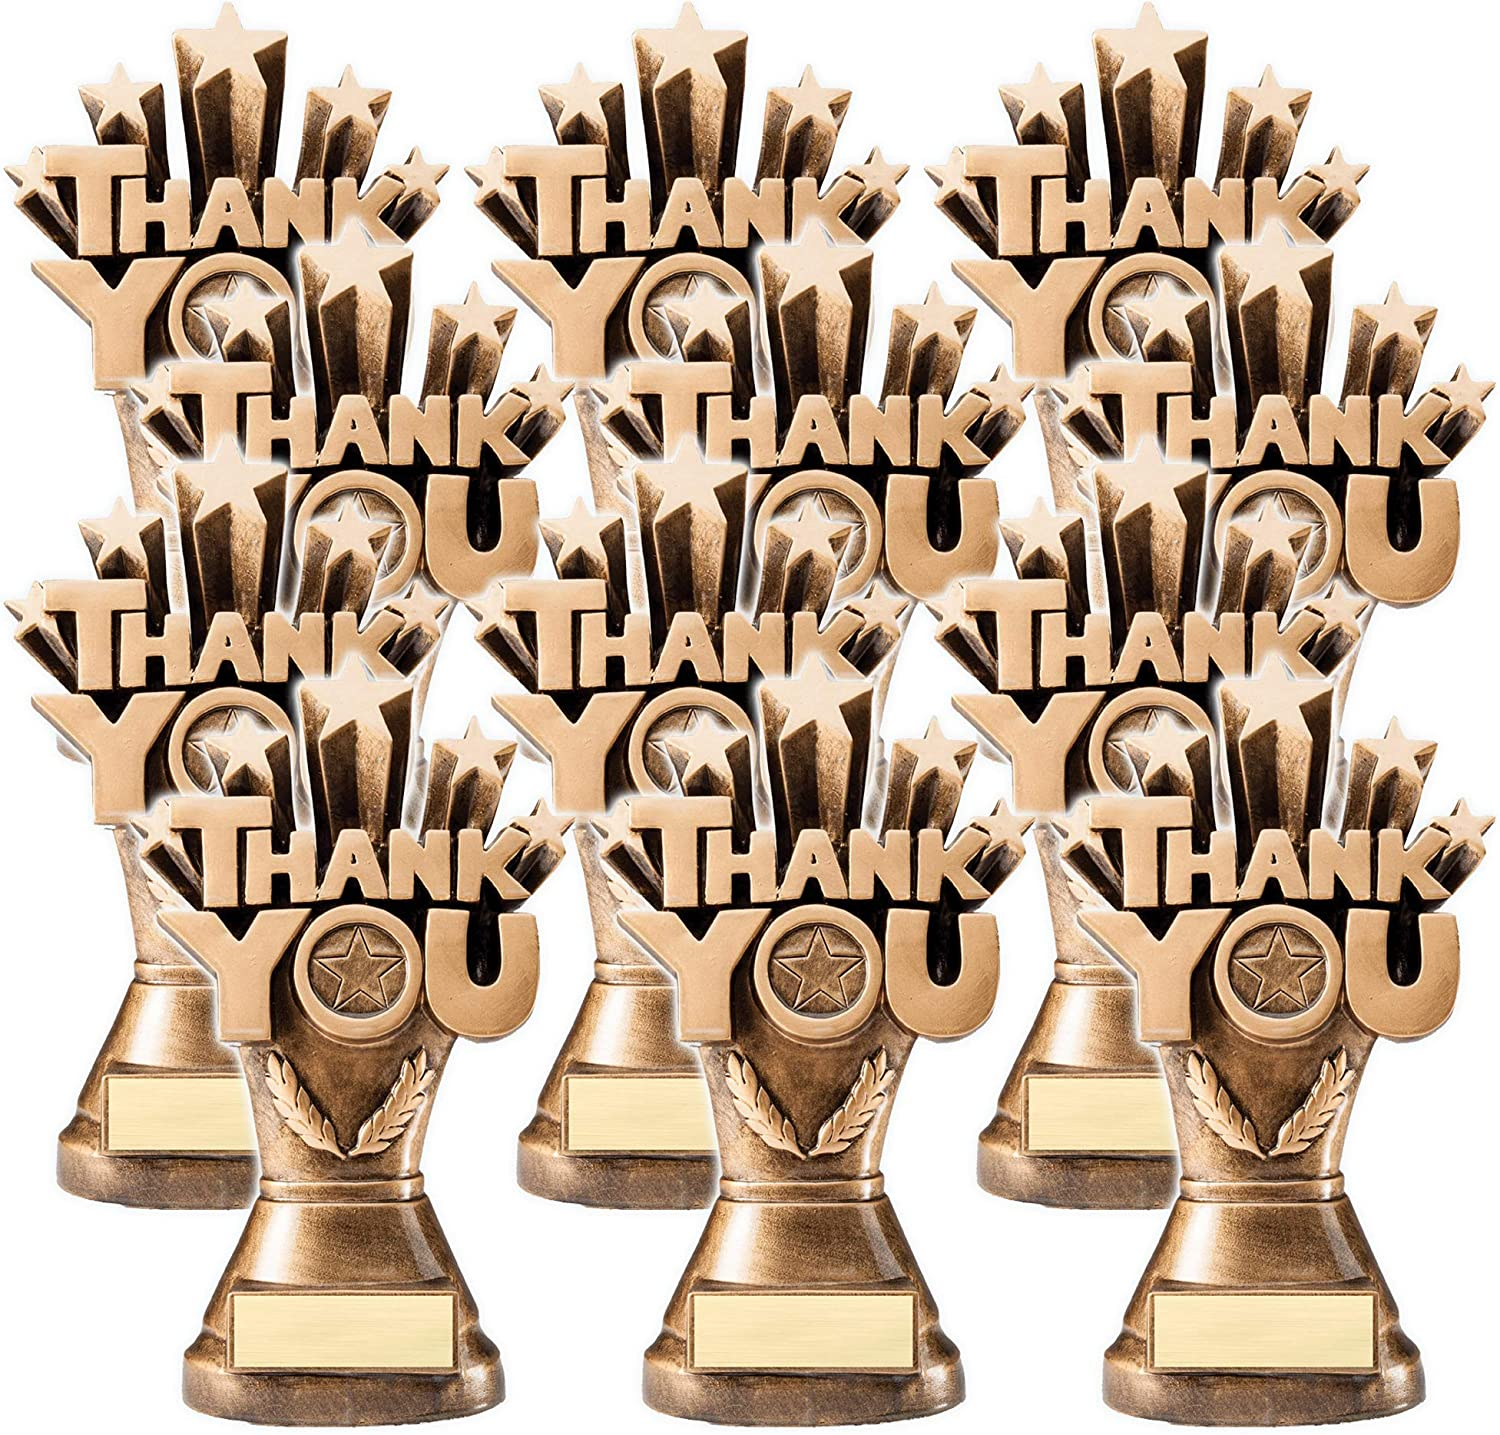 On Top Awards Thank You Trophy Award Resin 8.25 Tall